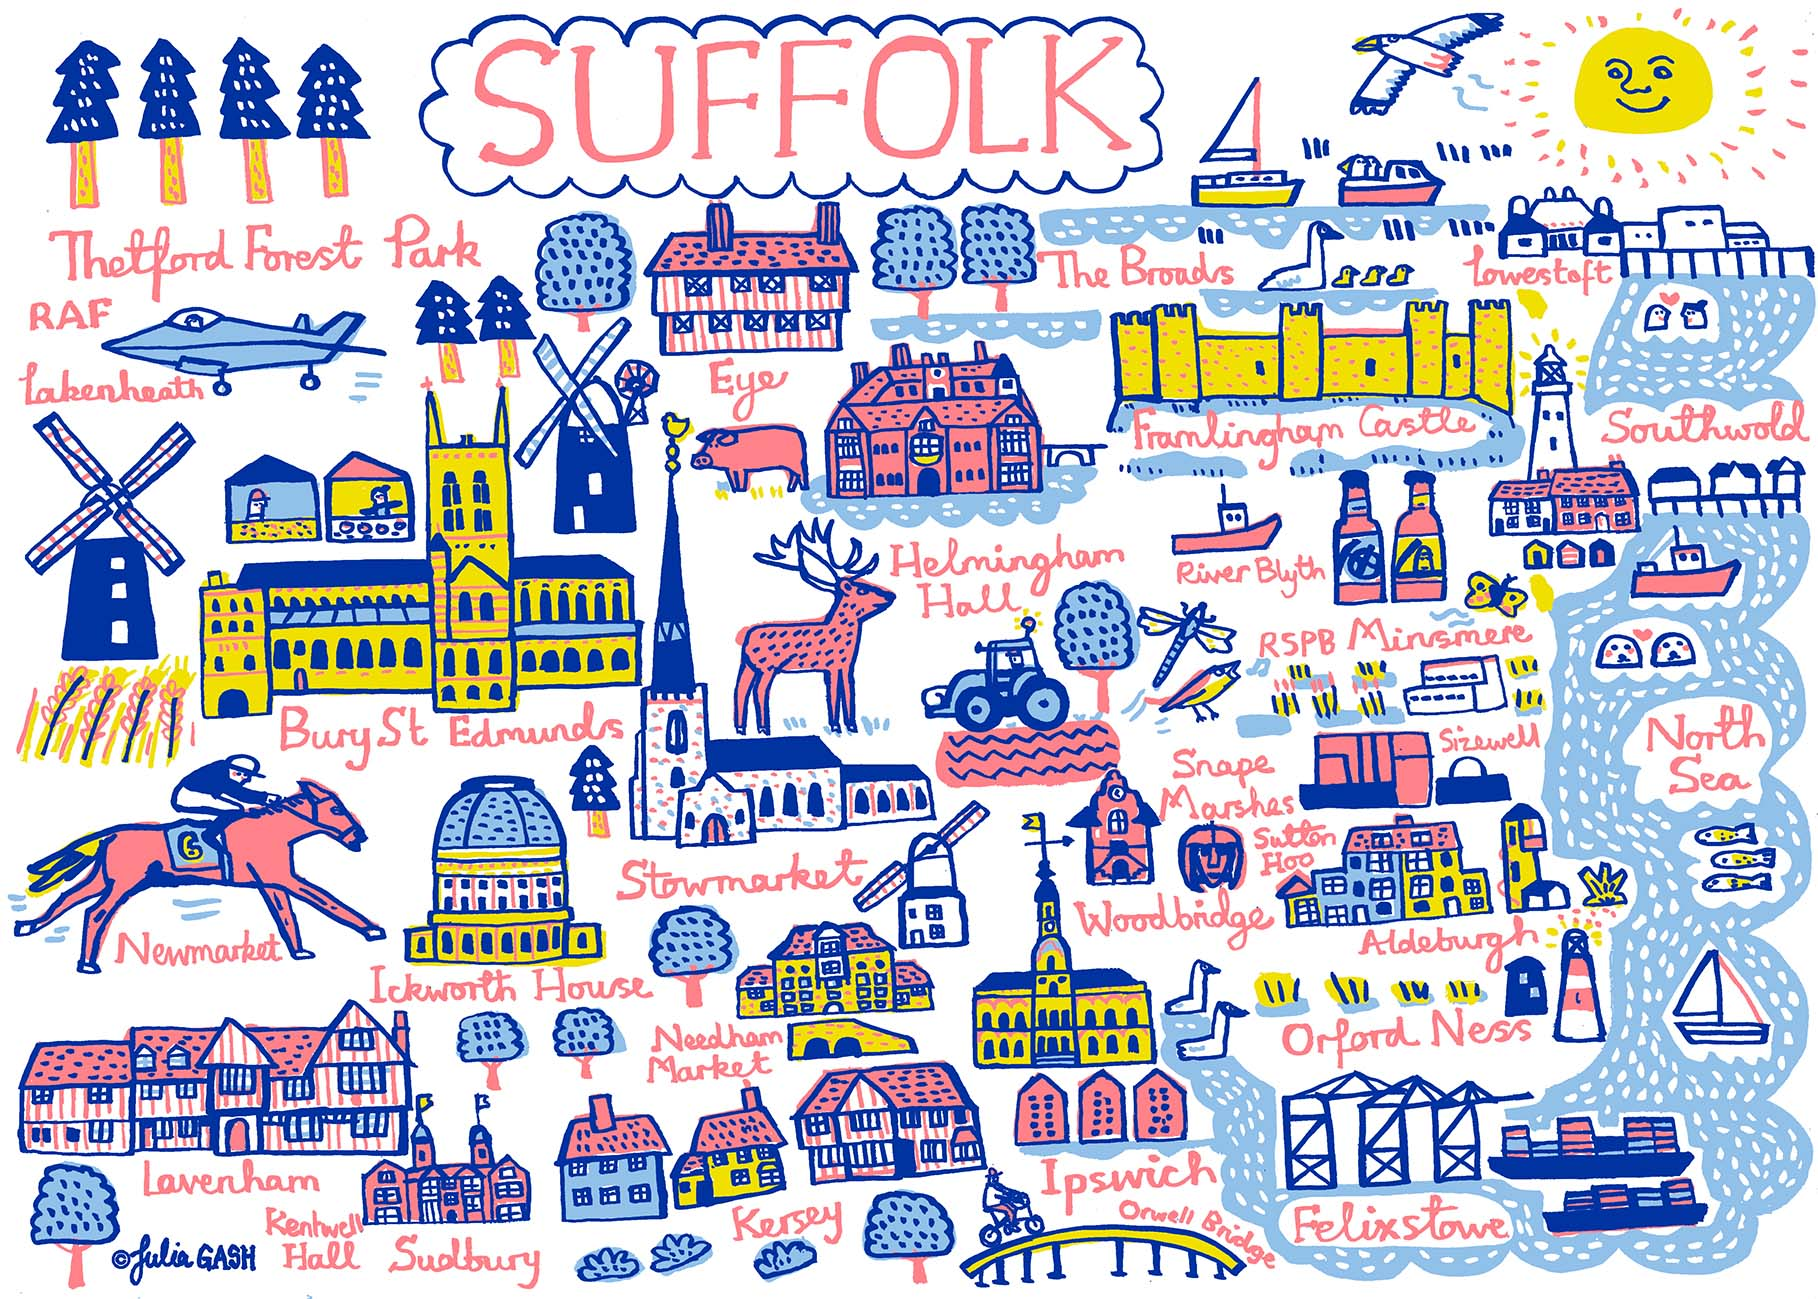 Super Suffolk Staycation